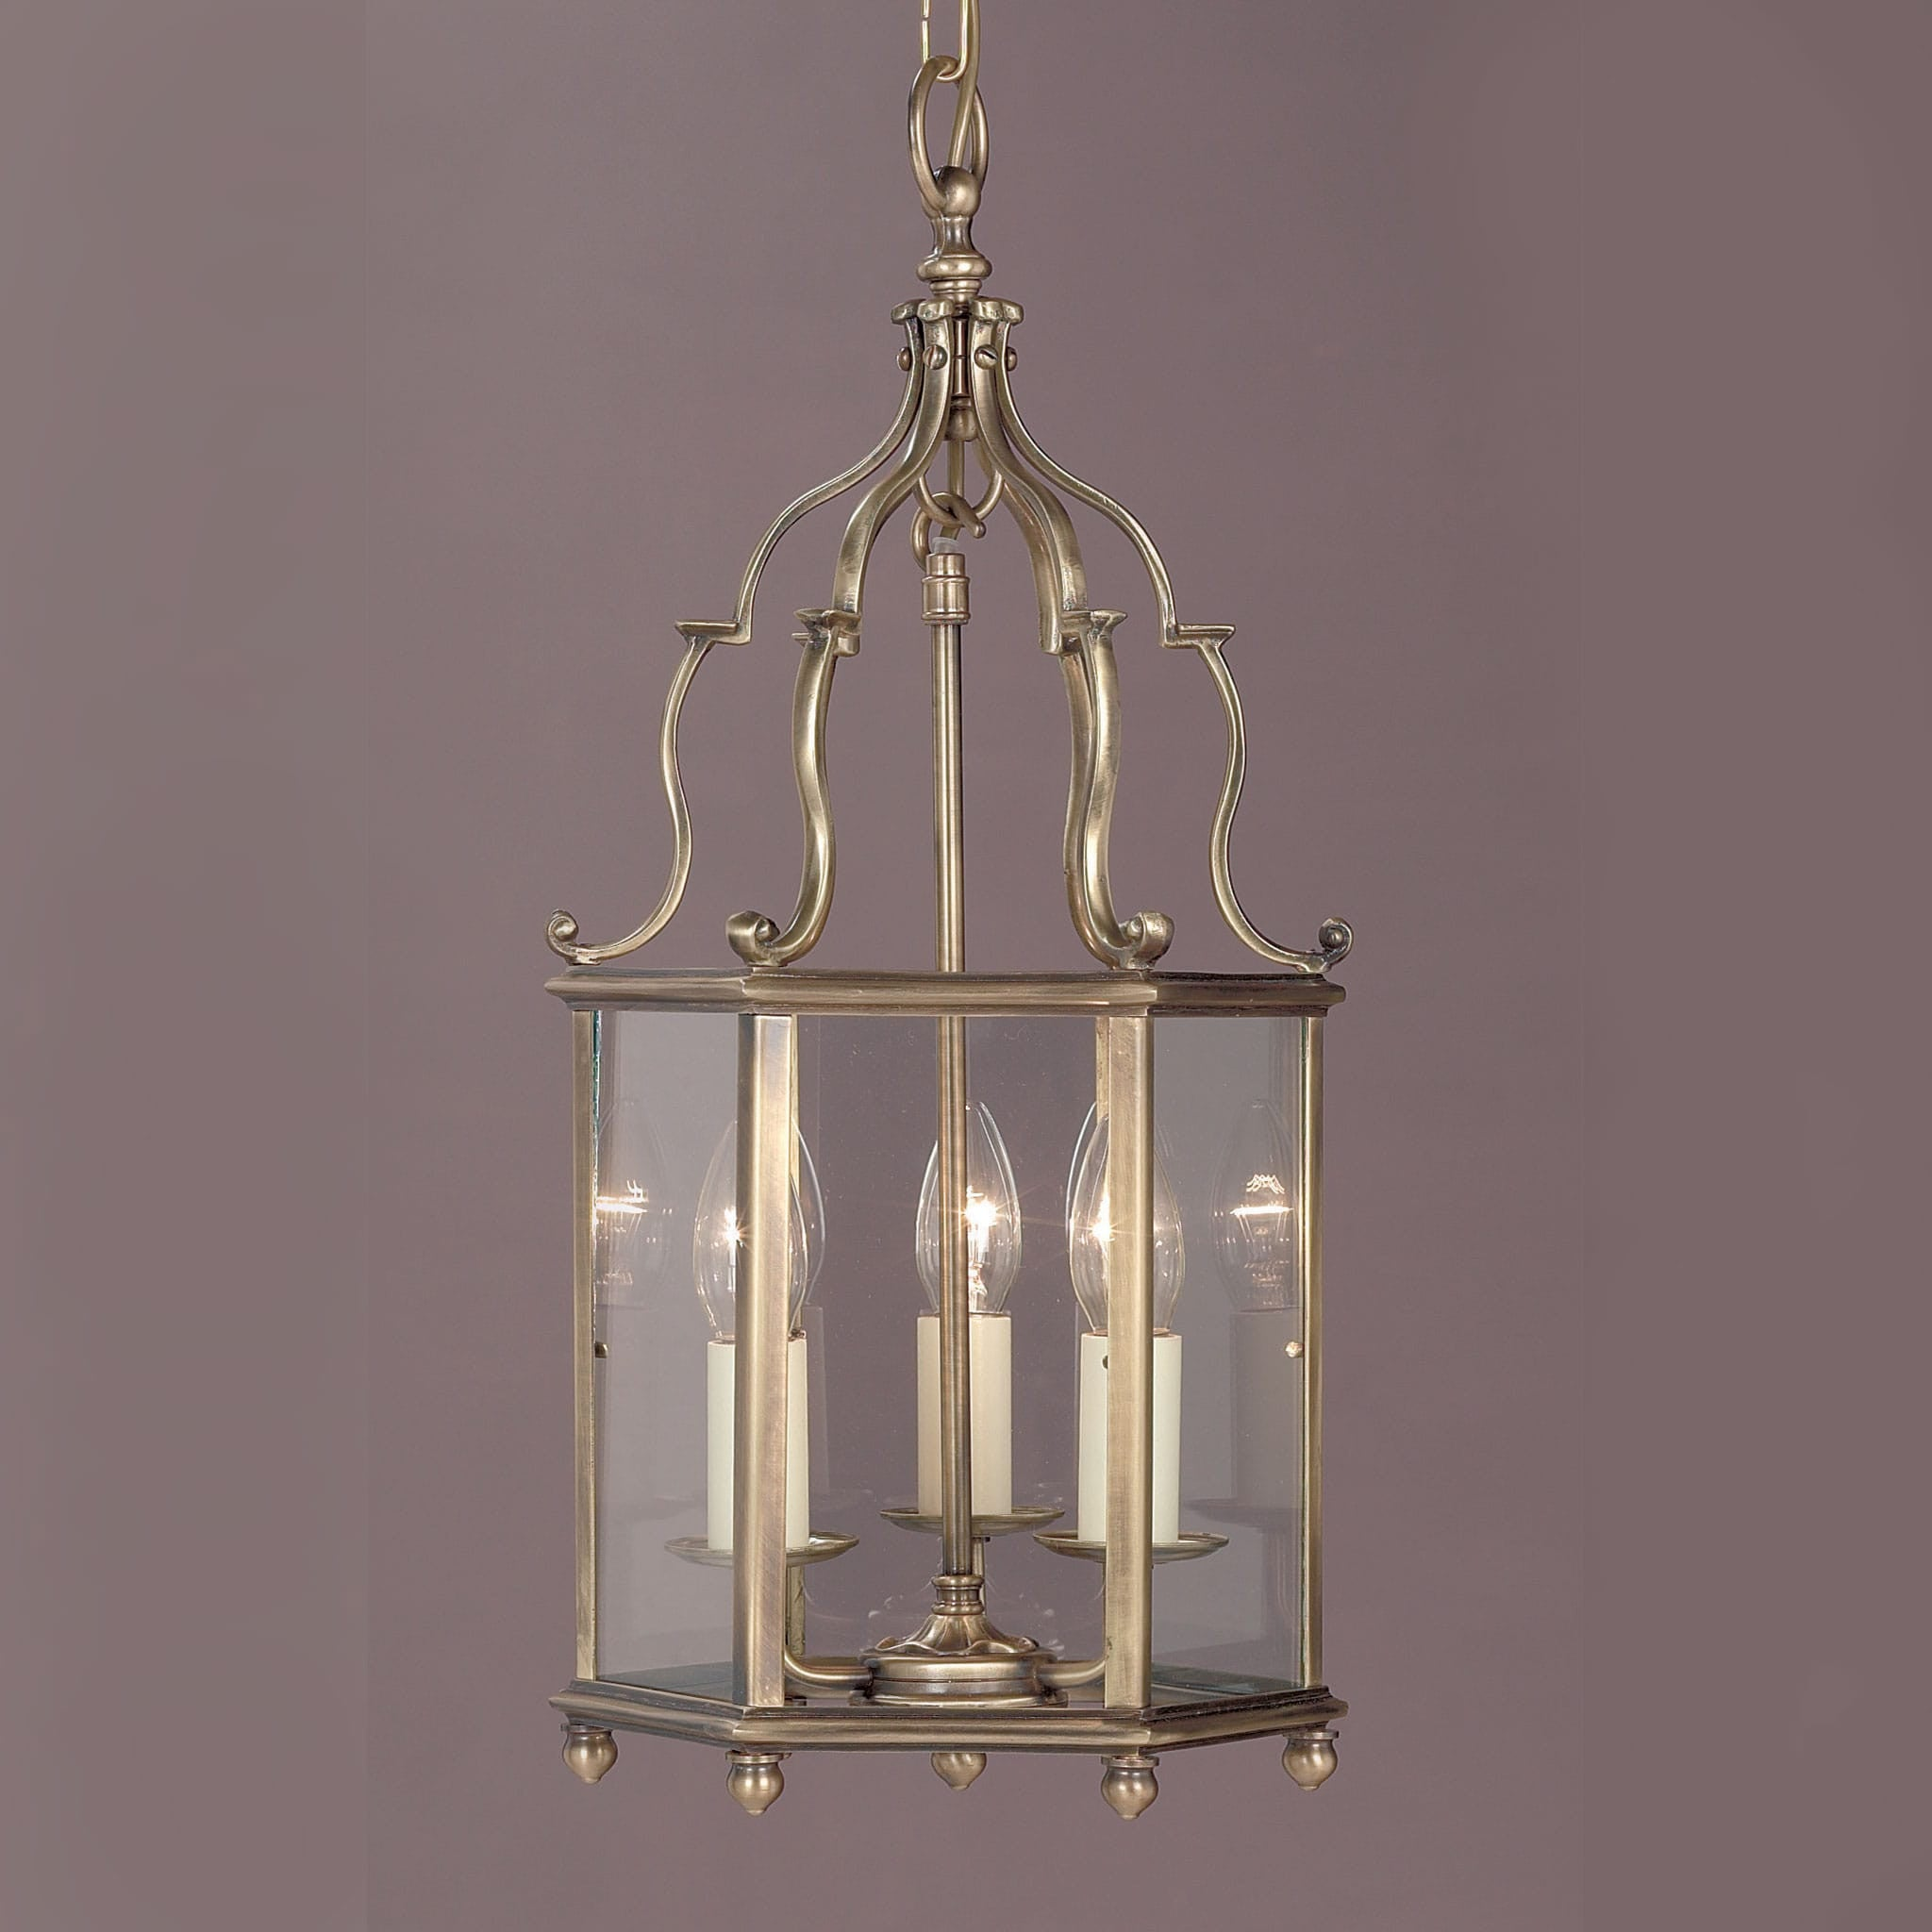 brushed interesting pendant with lantern hanging candle light polished lights nickel